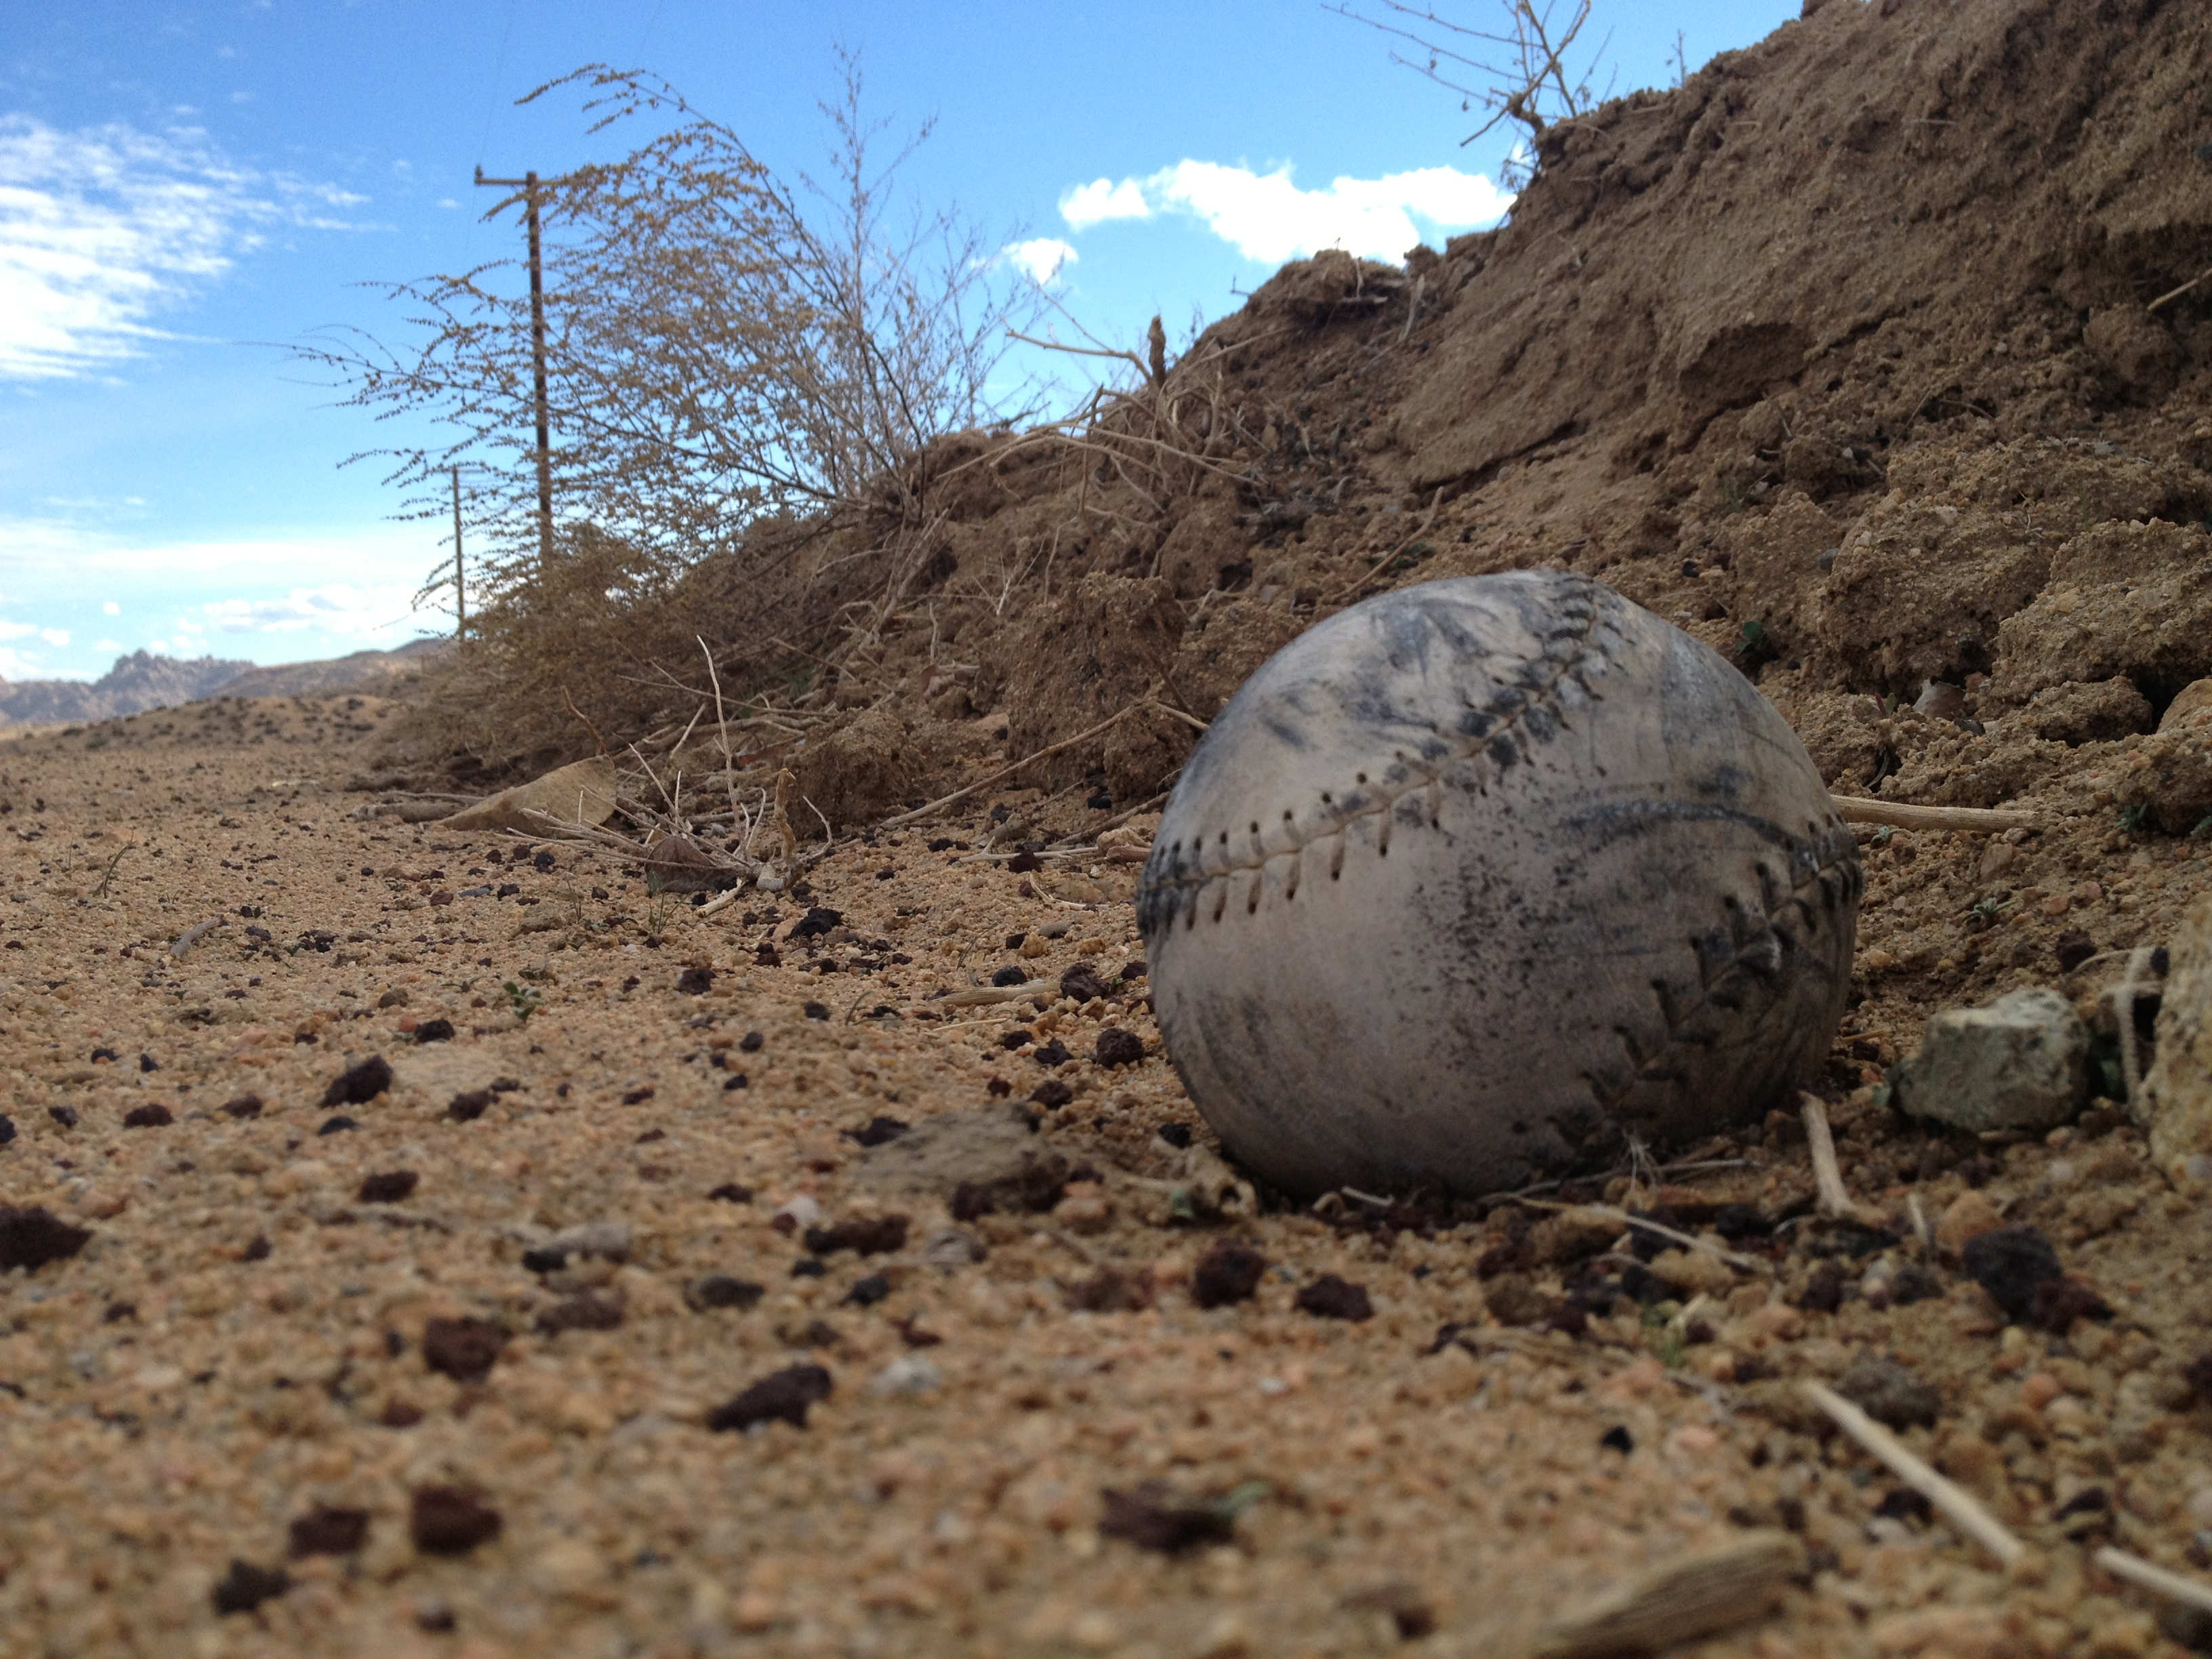 An old baseball in the desert, an example of the objects left behind. Photo by Brian Calvert.